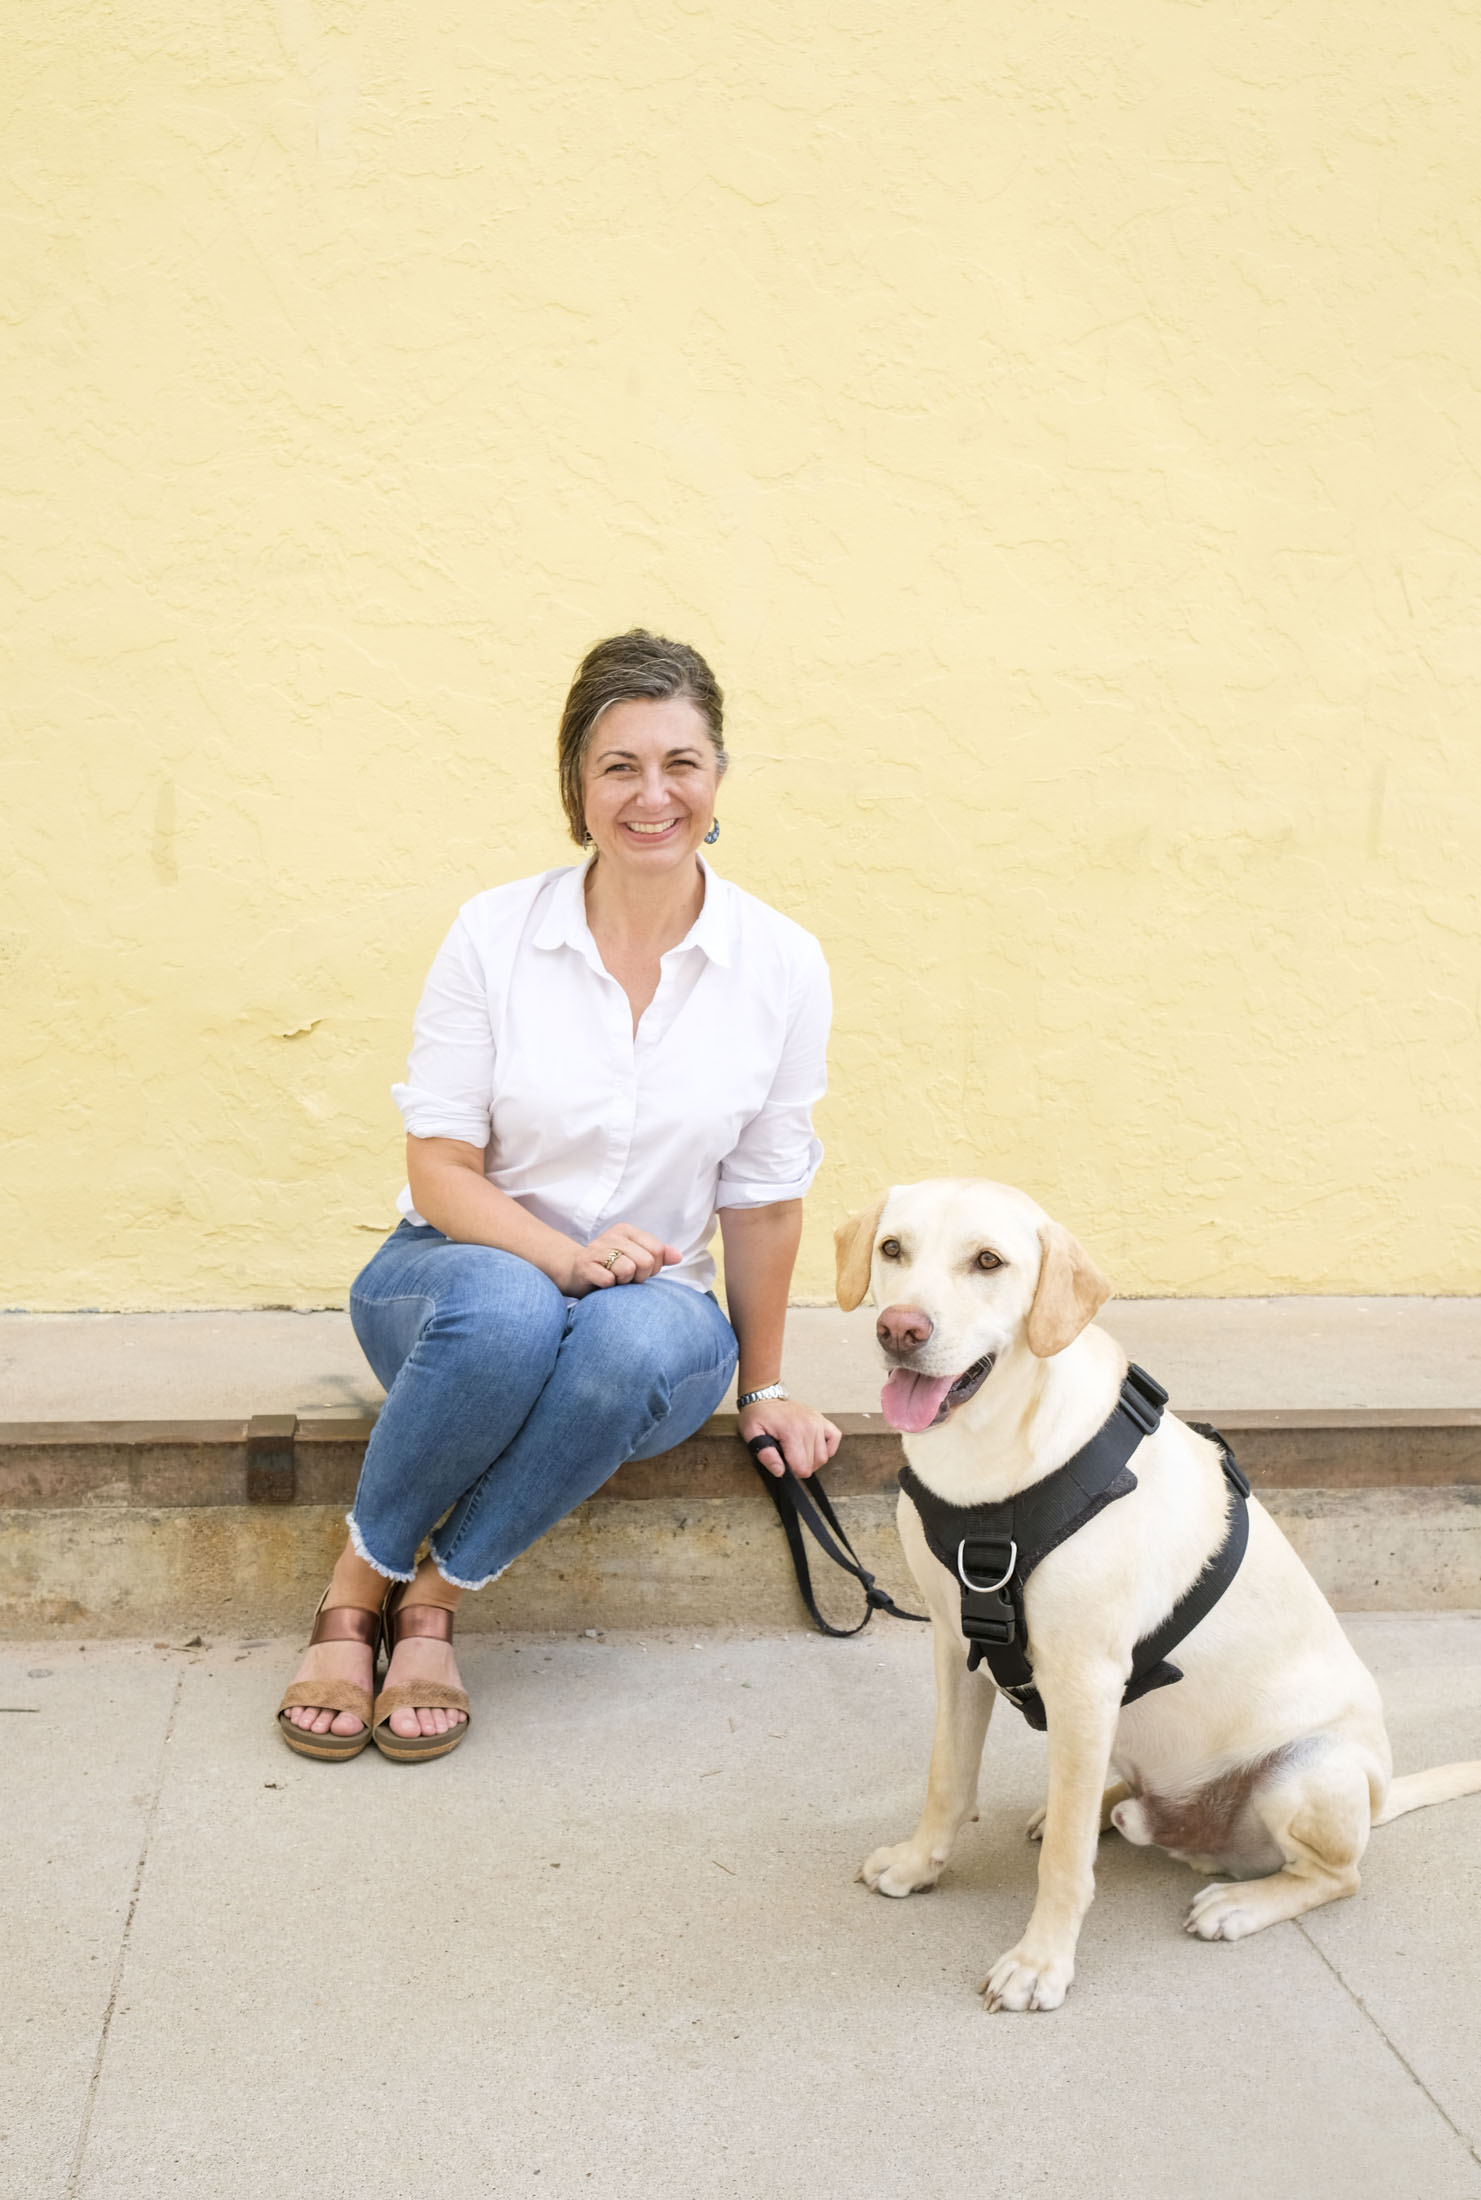 Lisa Black shares her story of meeting Finley and beginning to explore Animal Assisted Play Therapy.